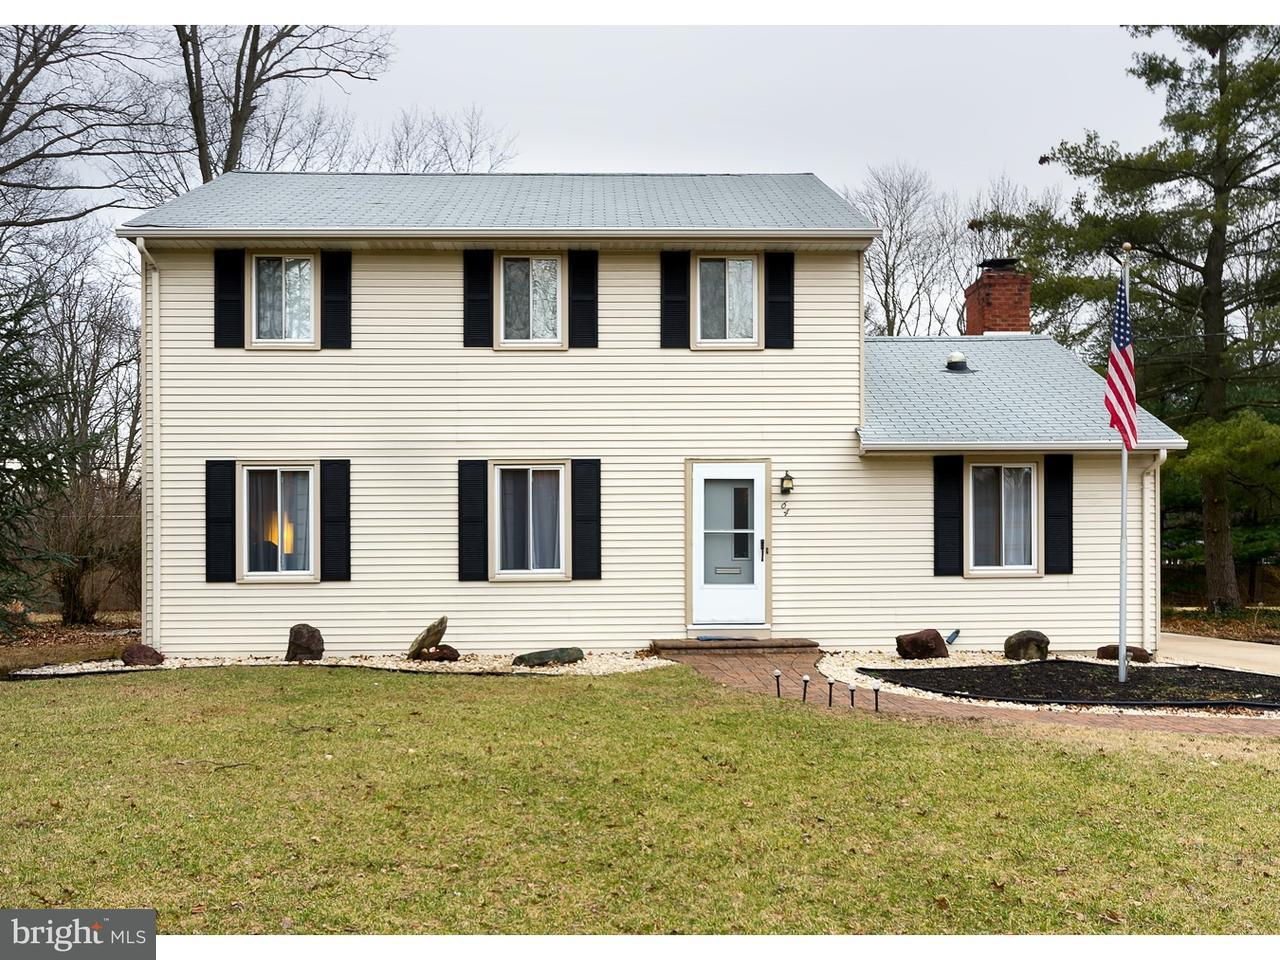 Single Family Home for Rent at 64 WAGON BRIDGE RUN Moorestown, New Jersey 08057 United States